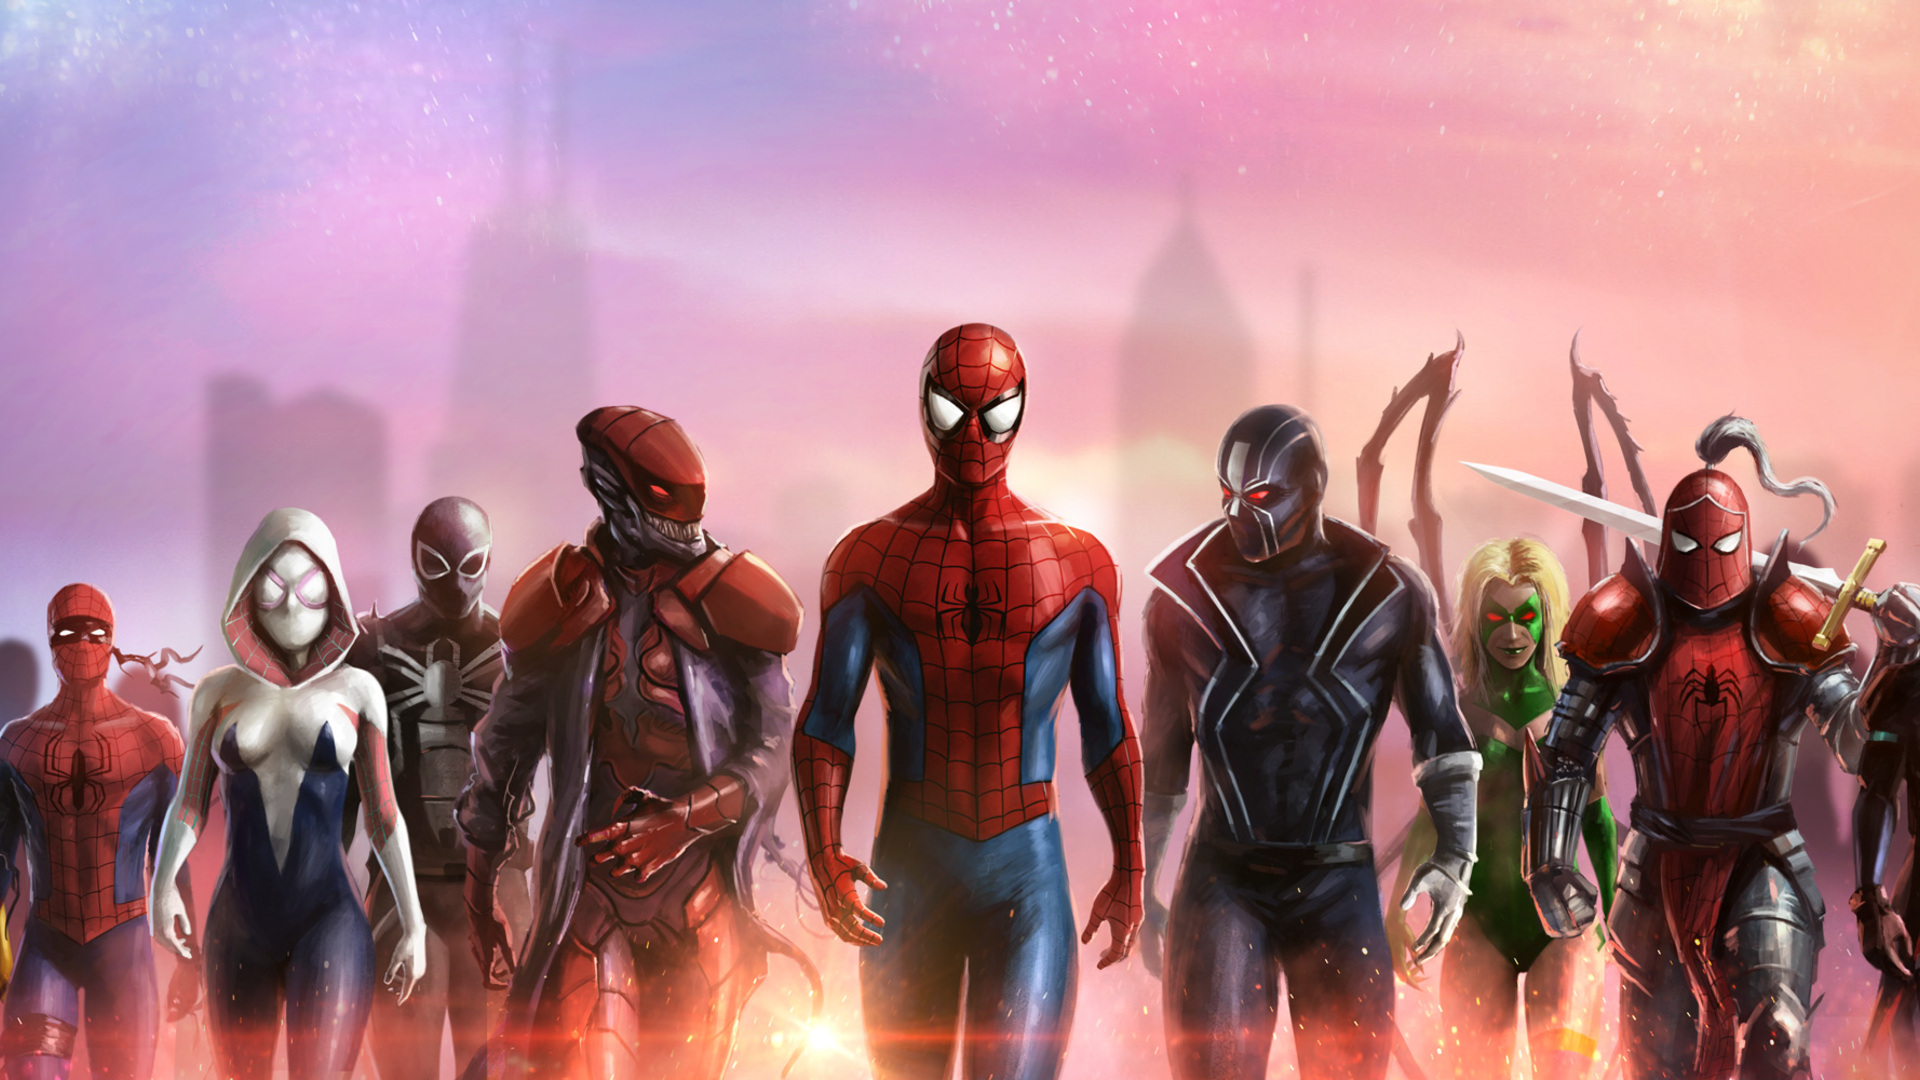 1920x1080 Spiderman And His Team Laptop Full Hd 1080p Hd 4k